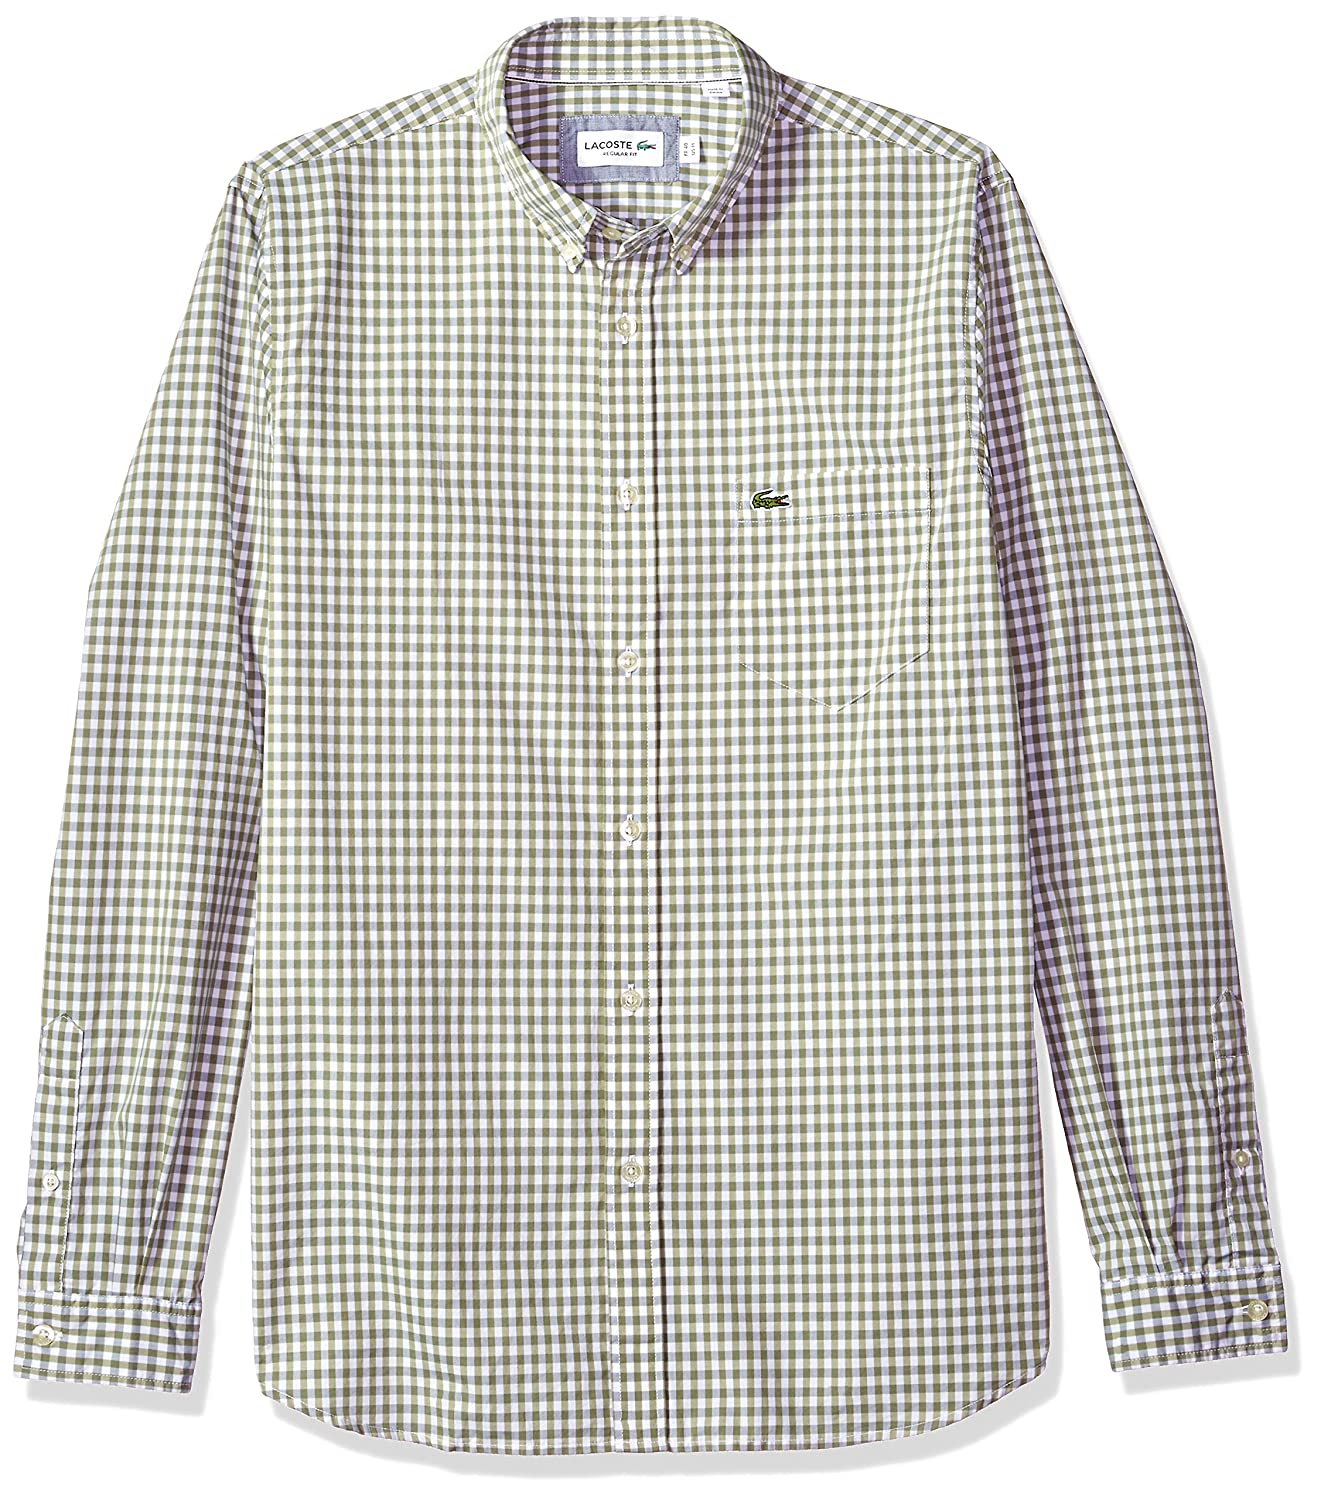 a9d71b61c Lacoste Casual Shirts Online